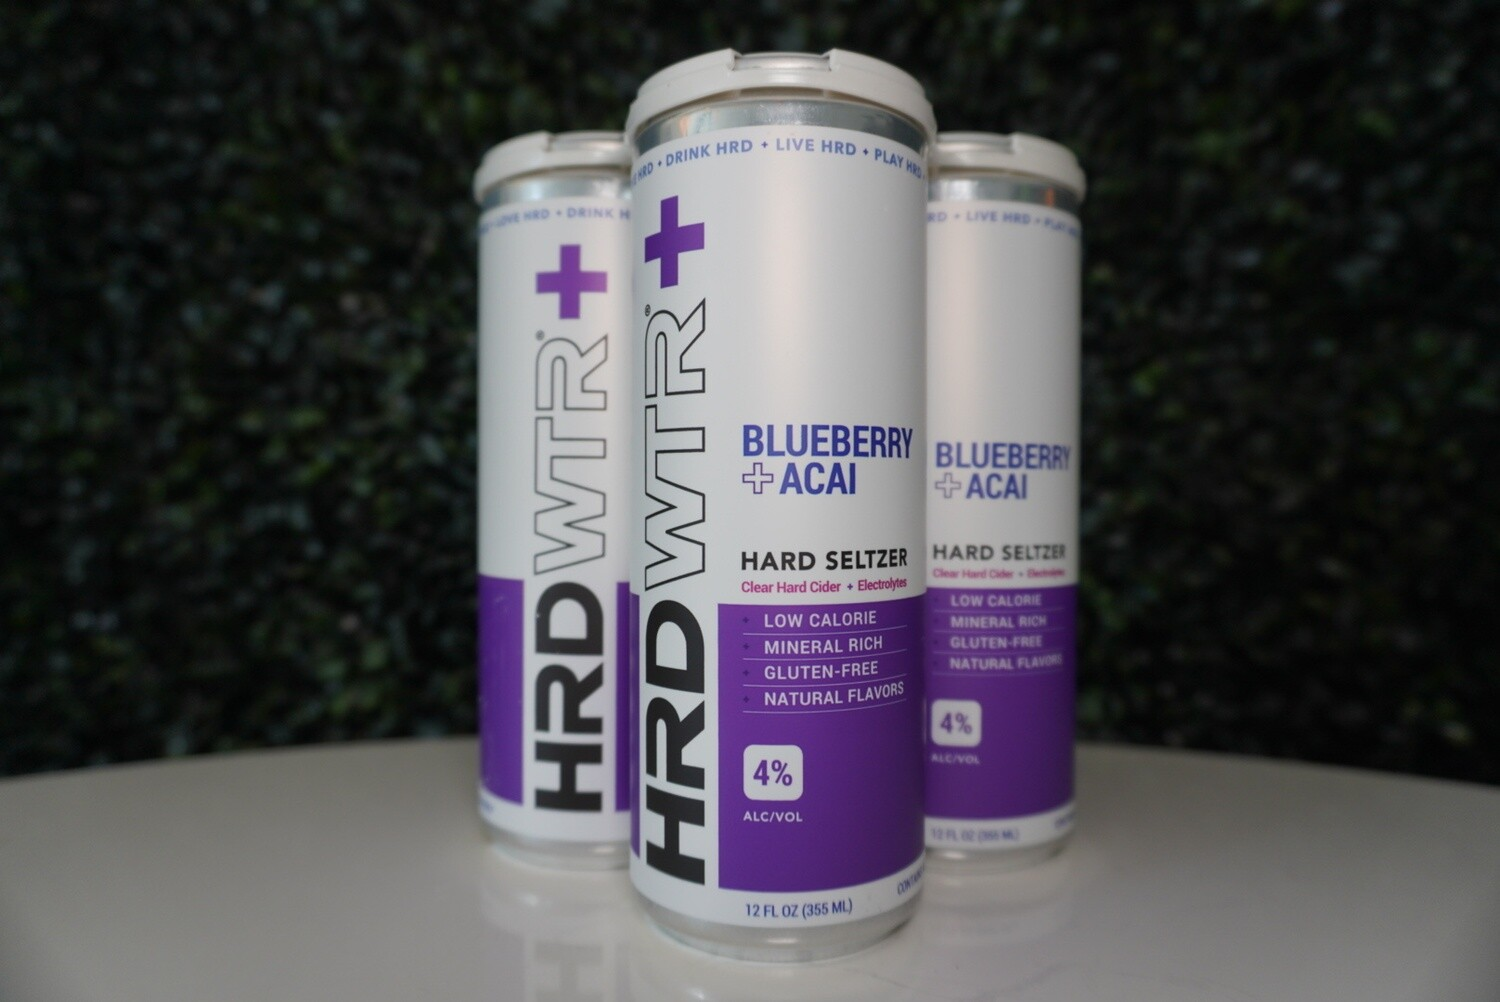 HRD WTR - Blueberry Acai - Hard Seltzer - 4% ABV - 4 Pack